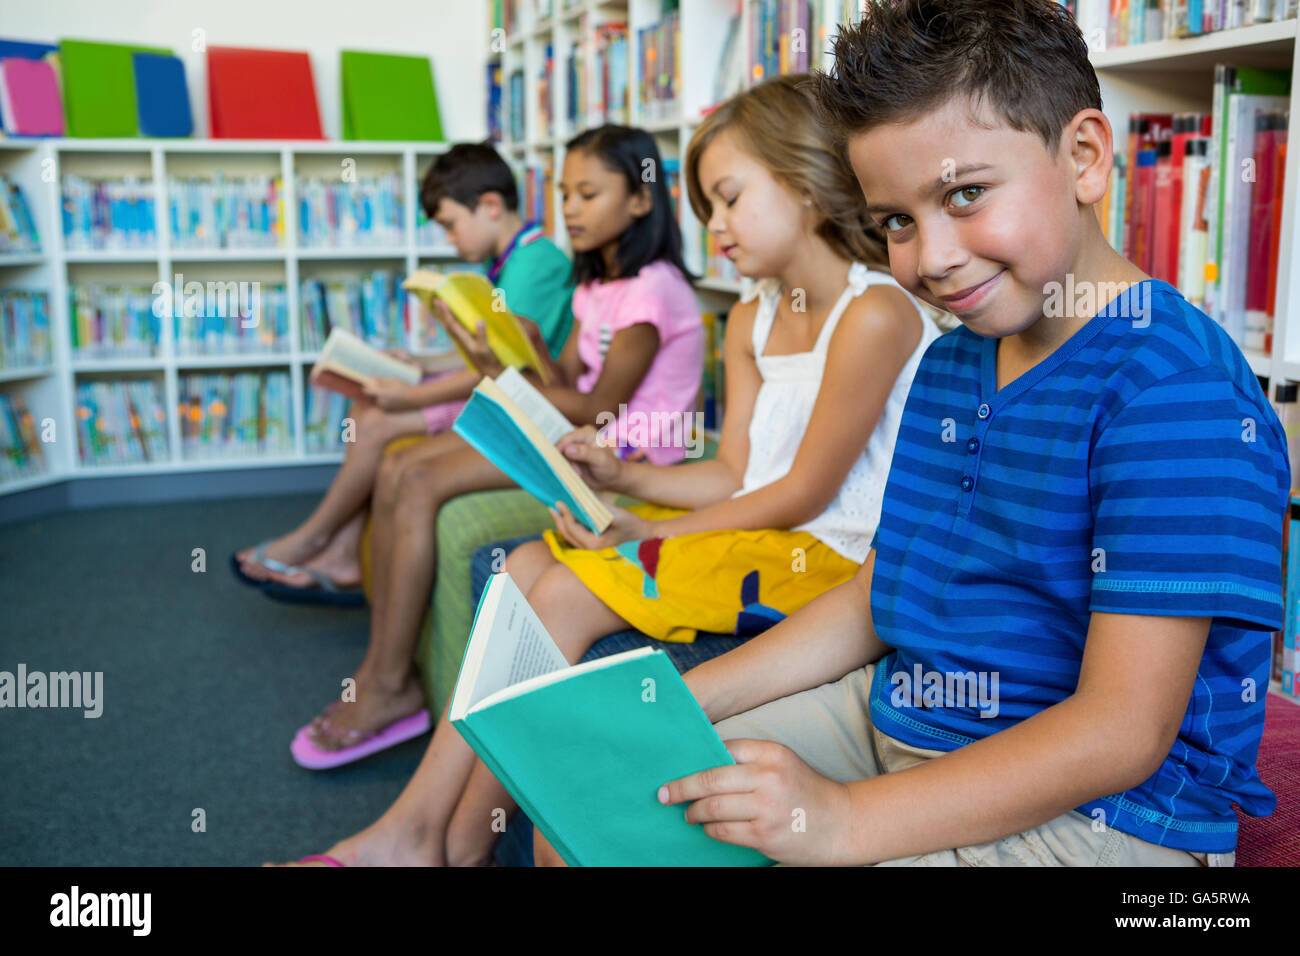 Elementary students reading books in library - Stock Image